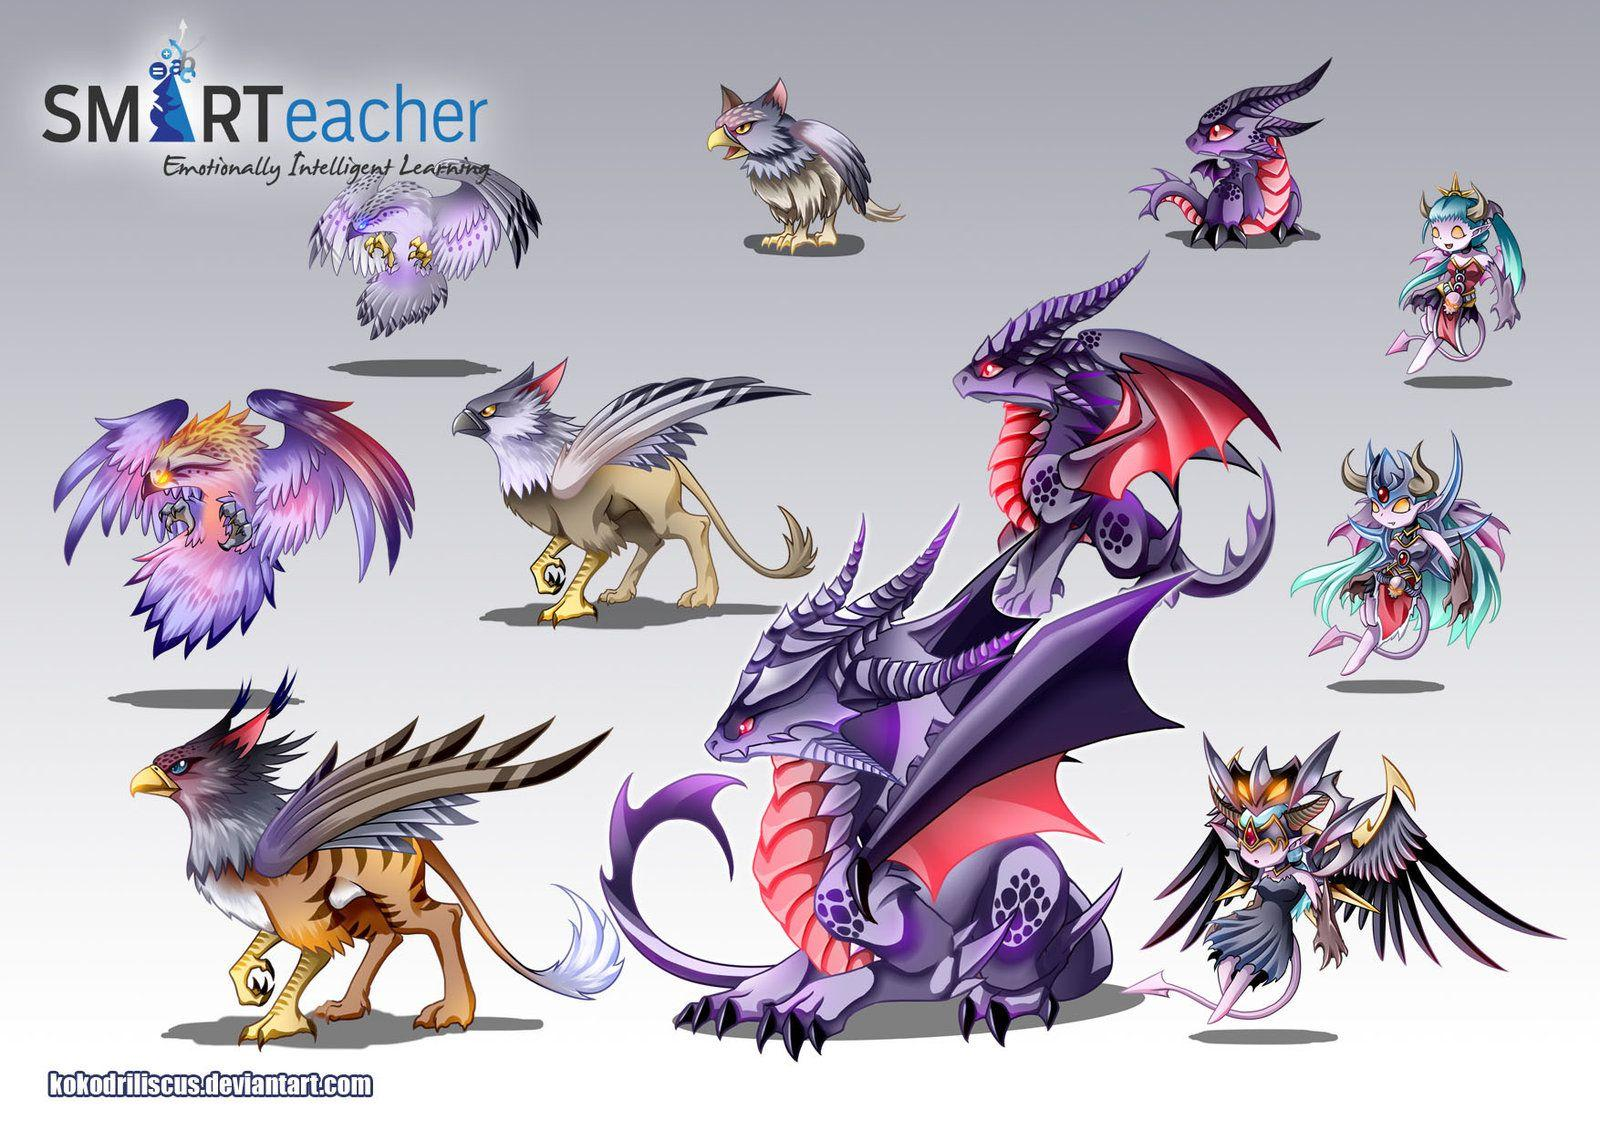 Prodigy Air Monsters by Dragolisco on DeviantArt